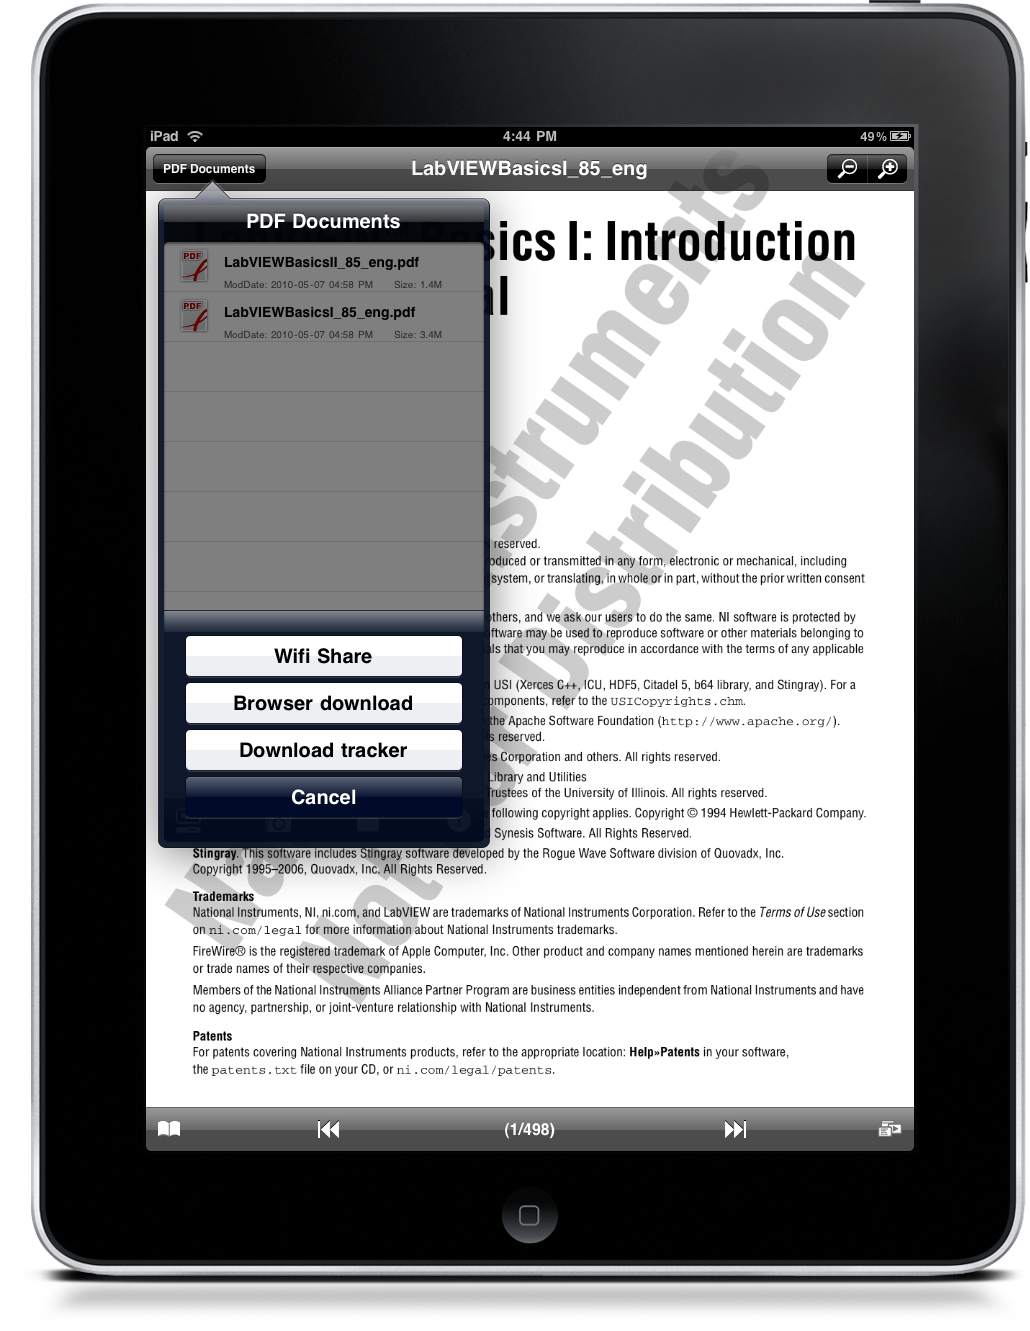 pdf reader for ipad is almost perfect macstories With pdf documents on ipad